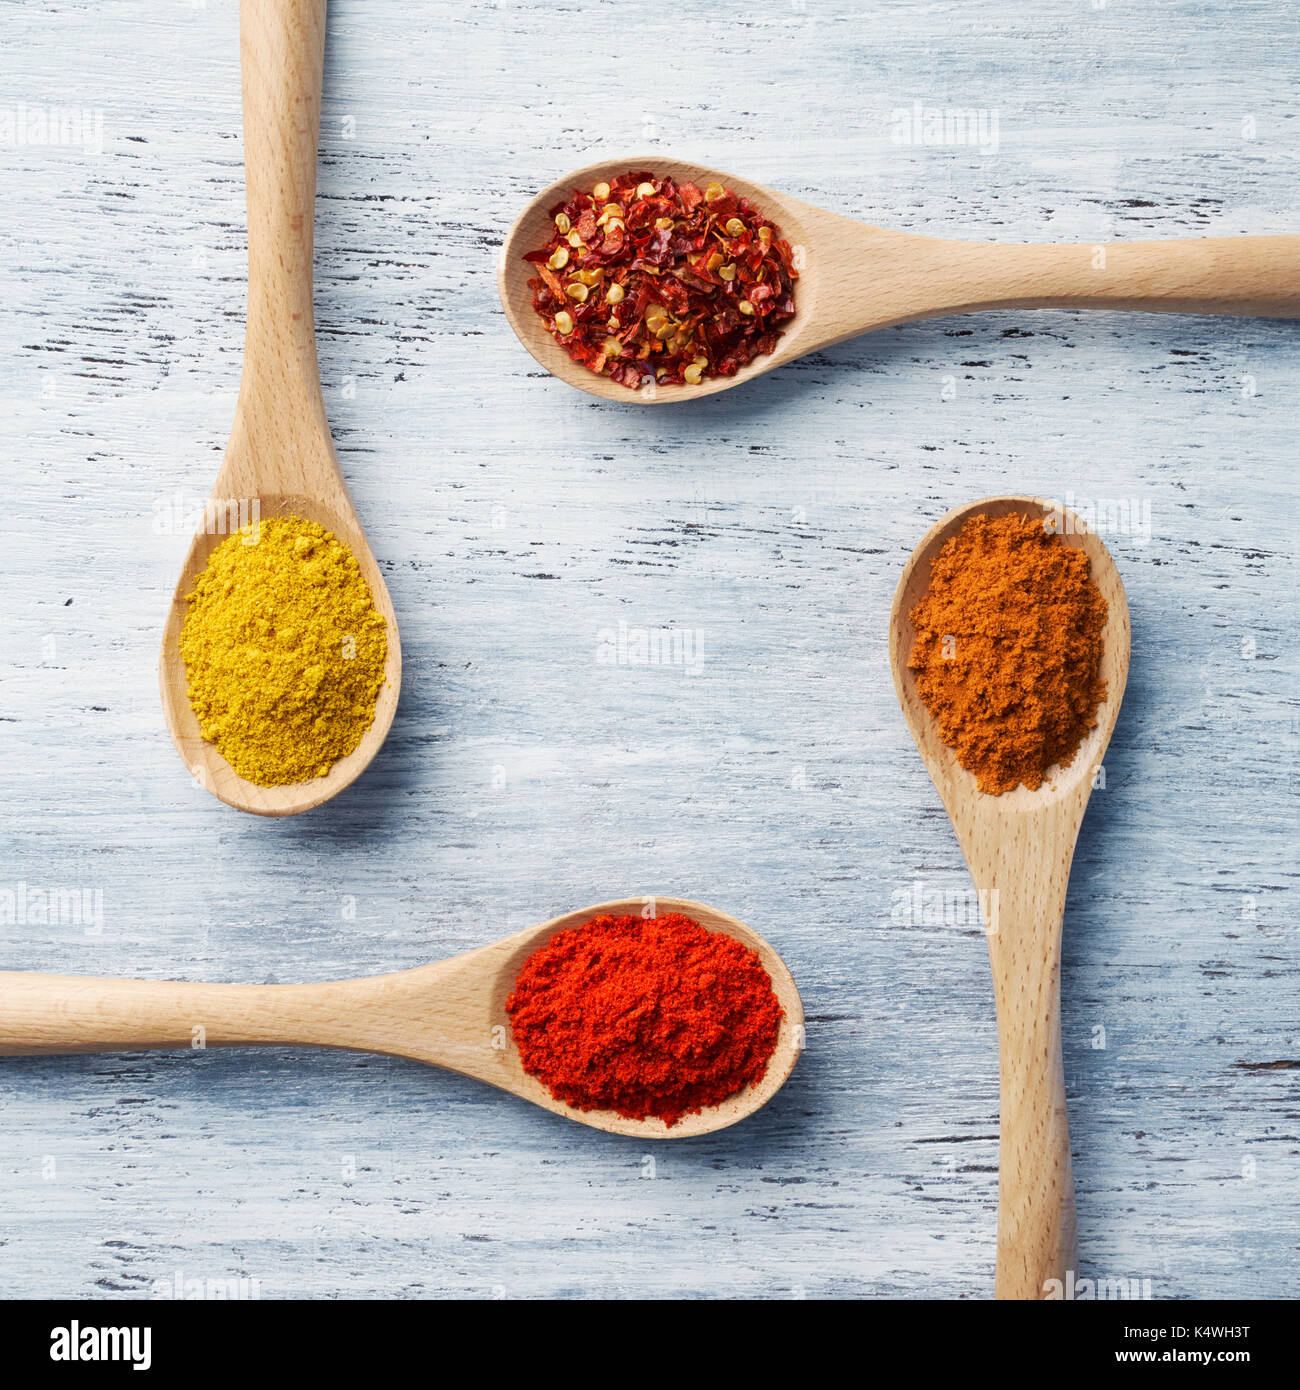 Wooden spoon filled with spices on white painted table - Stock Image